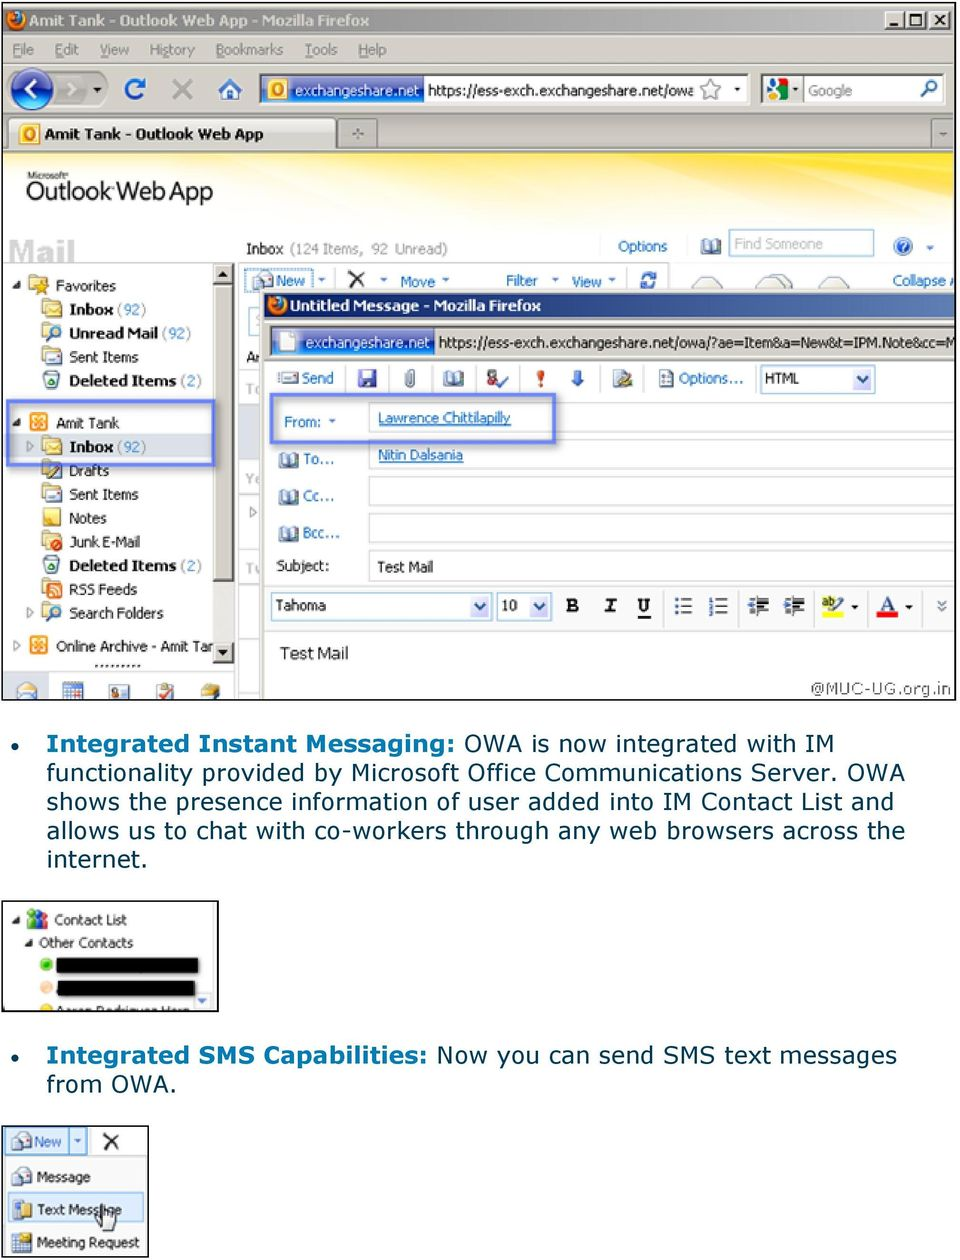 OWA shows the presence information of user added into IM Contact List and allows us to